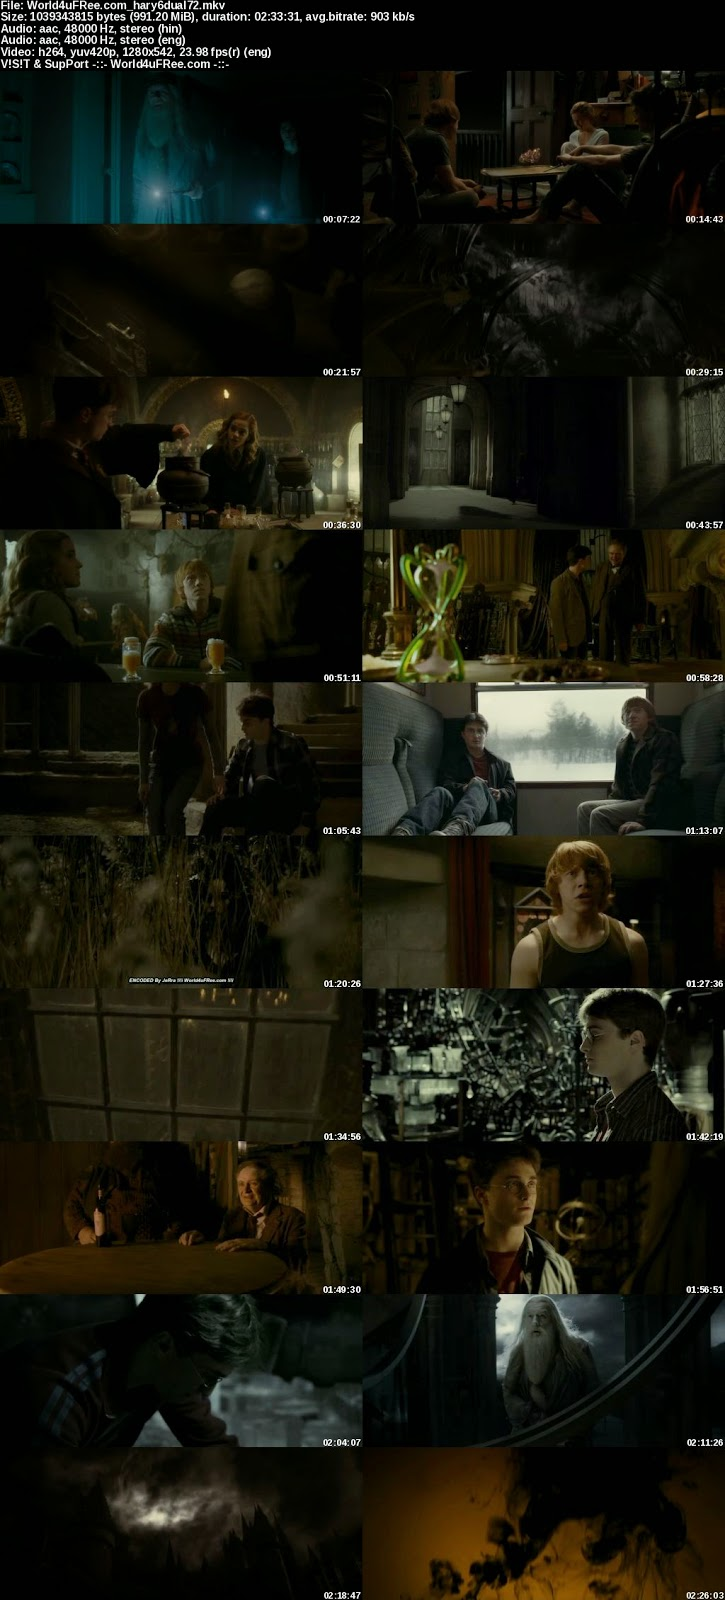 Harry Potter and the Half-Blood Prince 2009 Hindi Dubbed Dual BRRip 720p world4ufree.ws, hollywood movie Harry Potter and the Half-Blood Prince 2009 hindi dubbed dual audio hindi english languages original audio 720p BRRip hdrip free download 700mb or watch online at world4ufree.ws